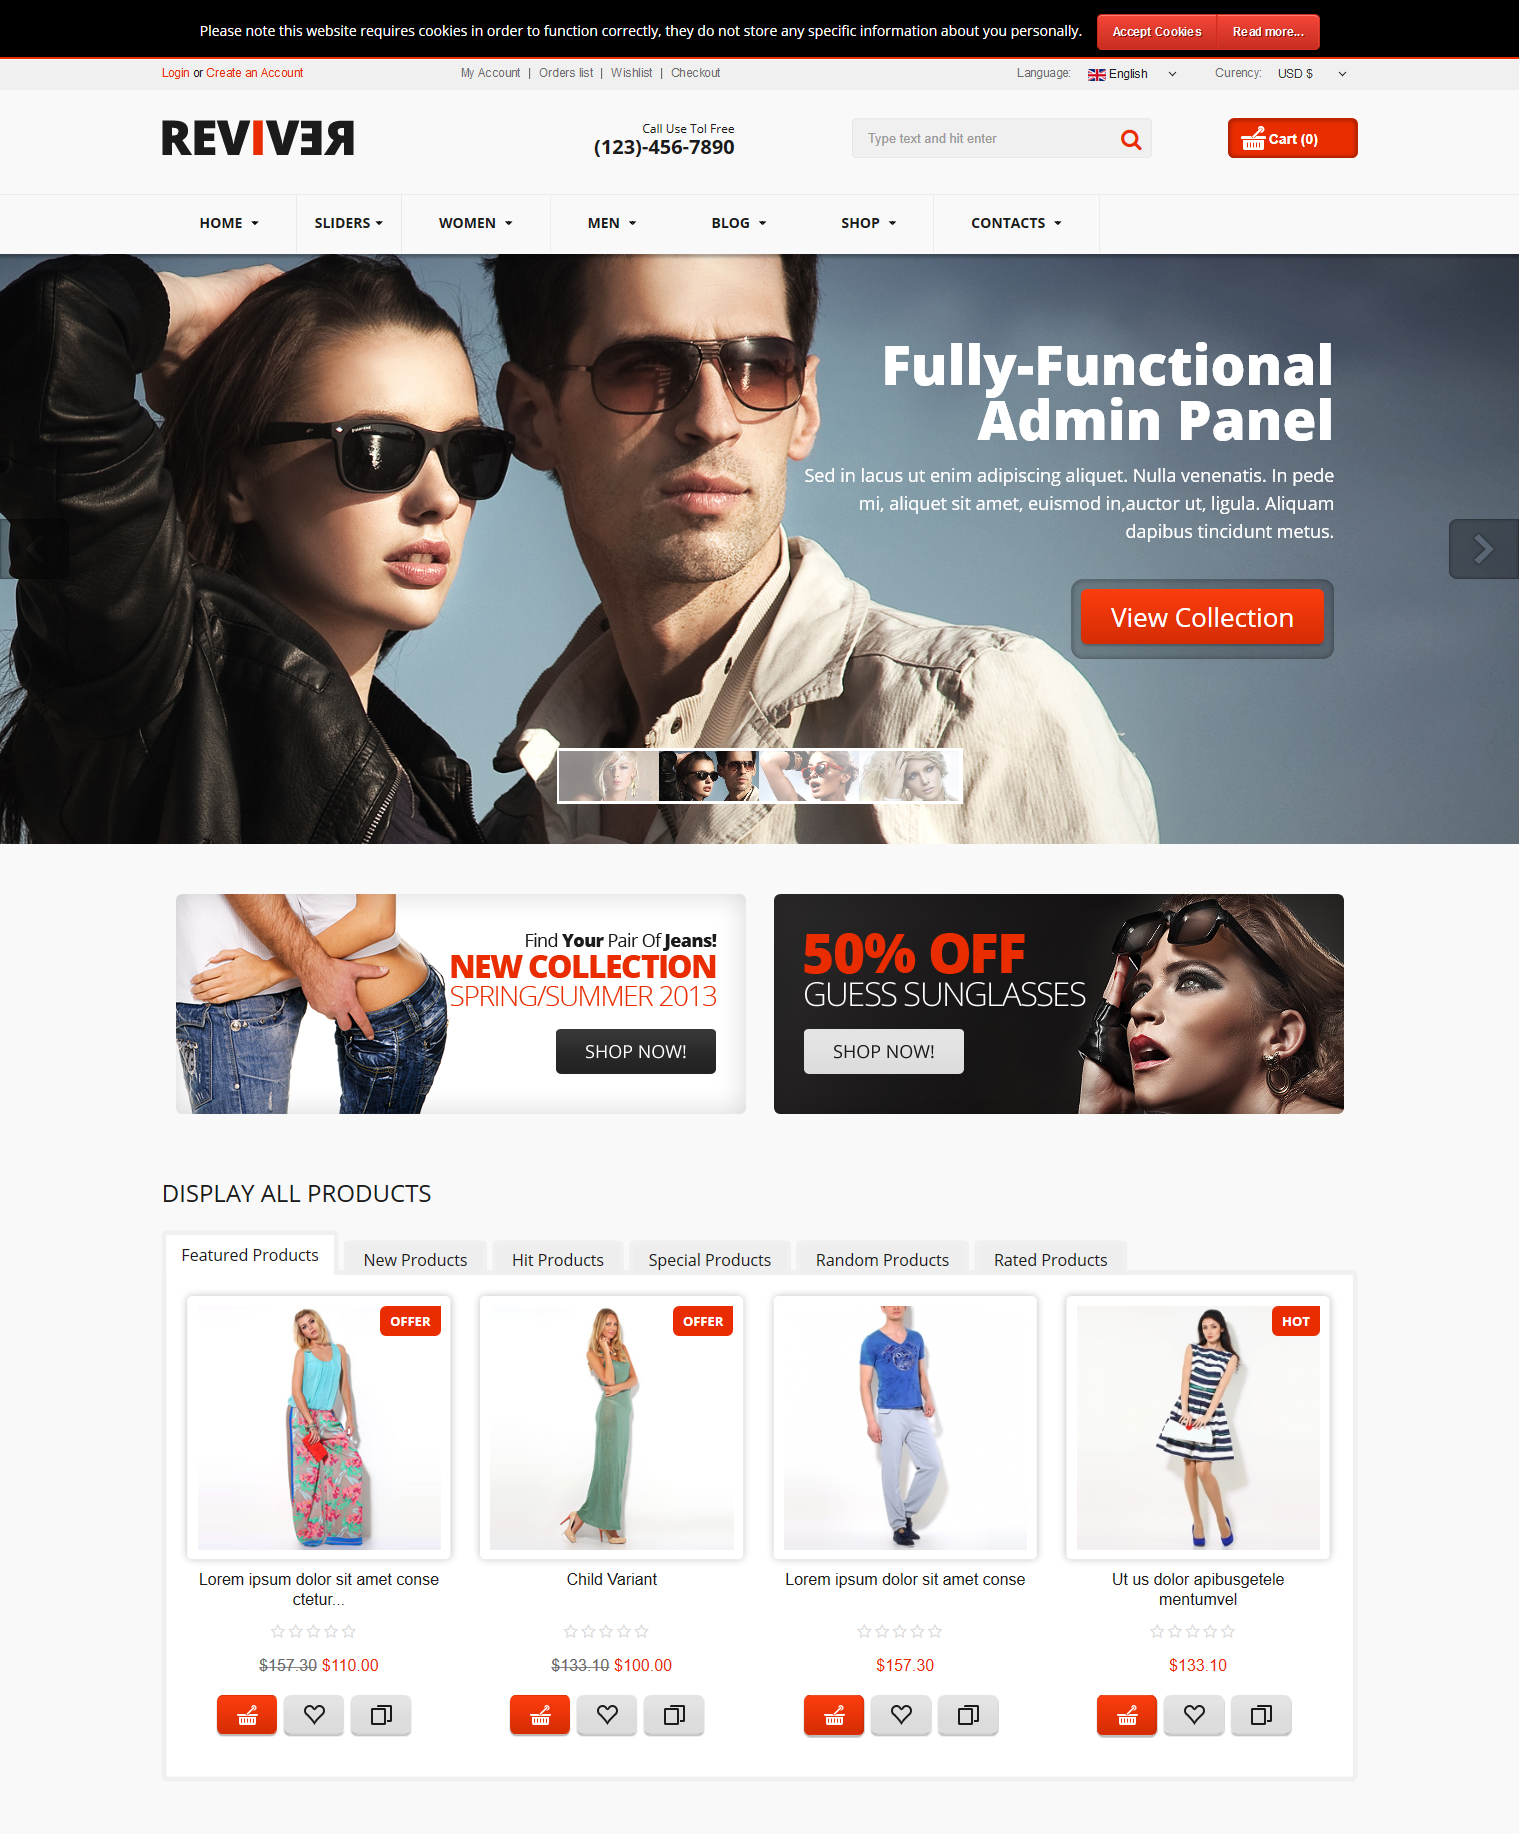 Best Virtuemart Templates For Your ECommerce Site - Ecommerce site templates